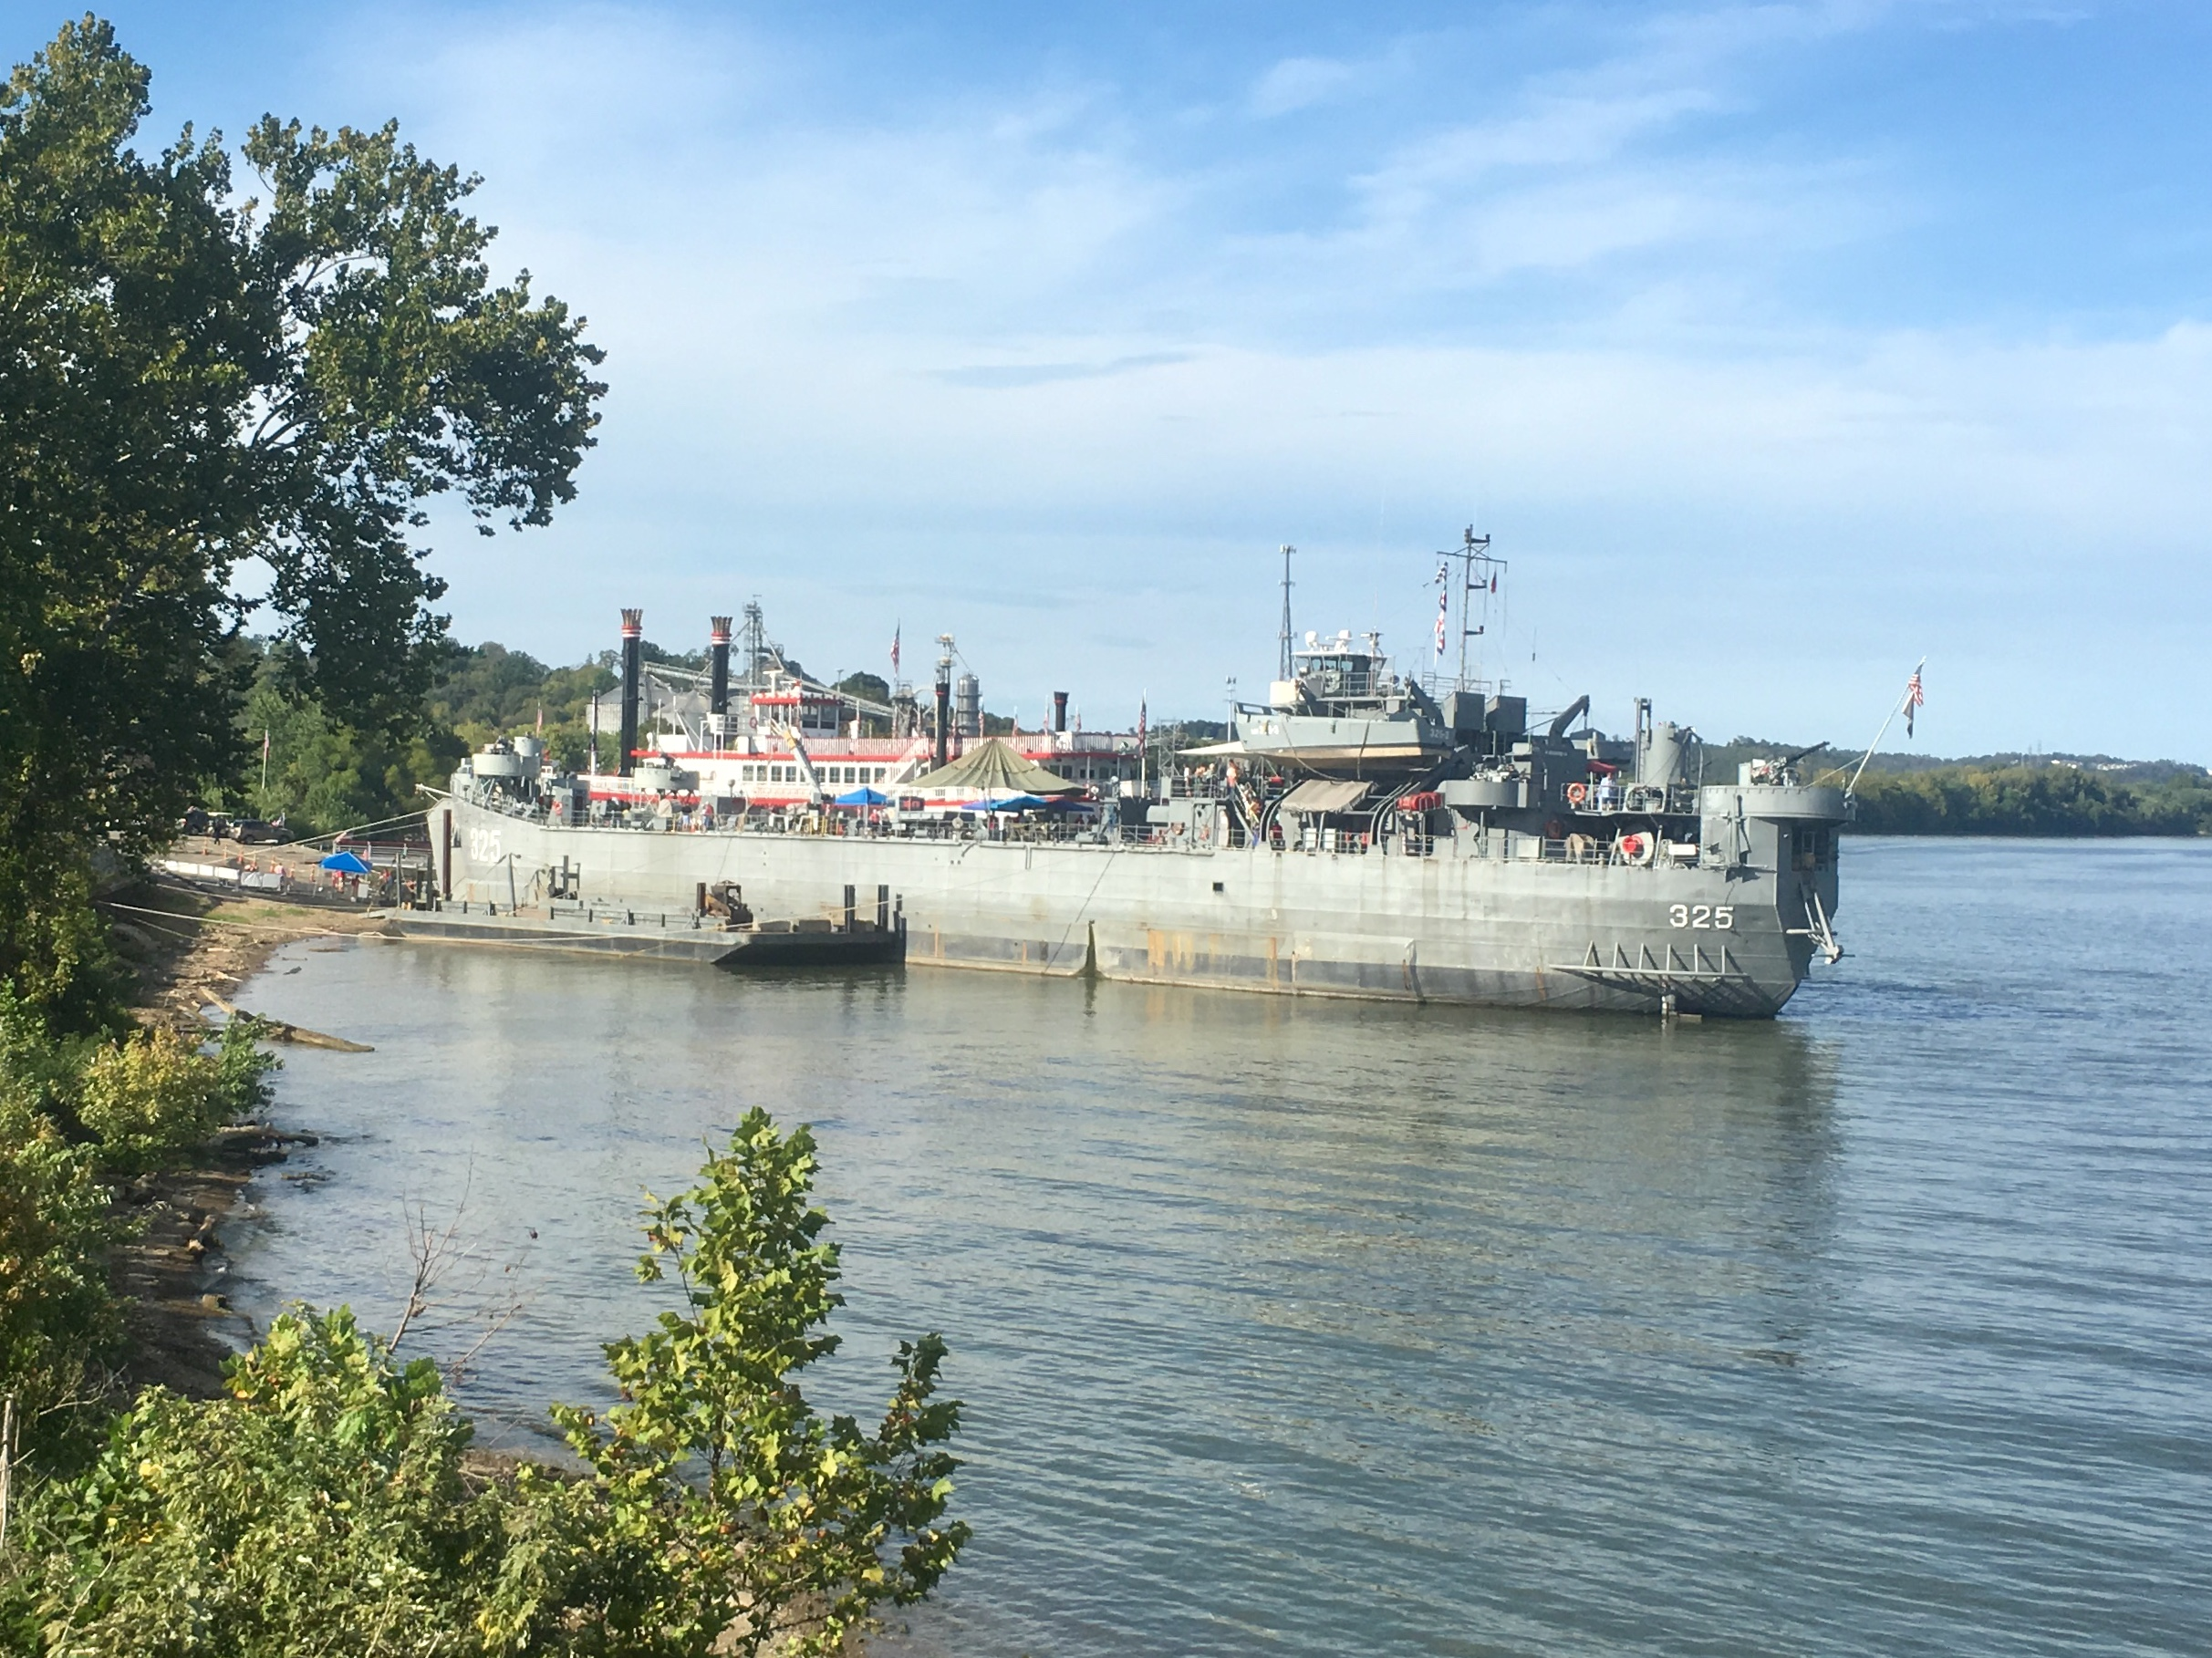 Tour One-of-a-Kind Naval Ship in Evansville, Indiana